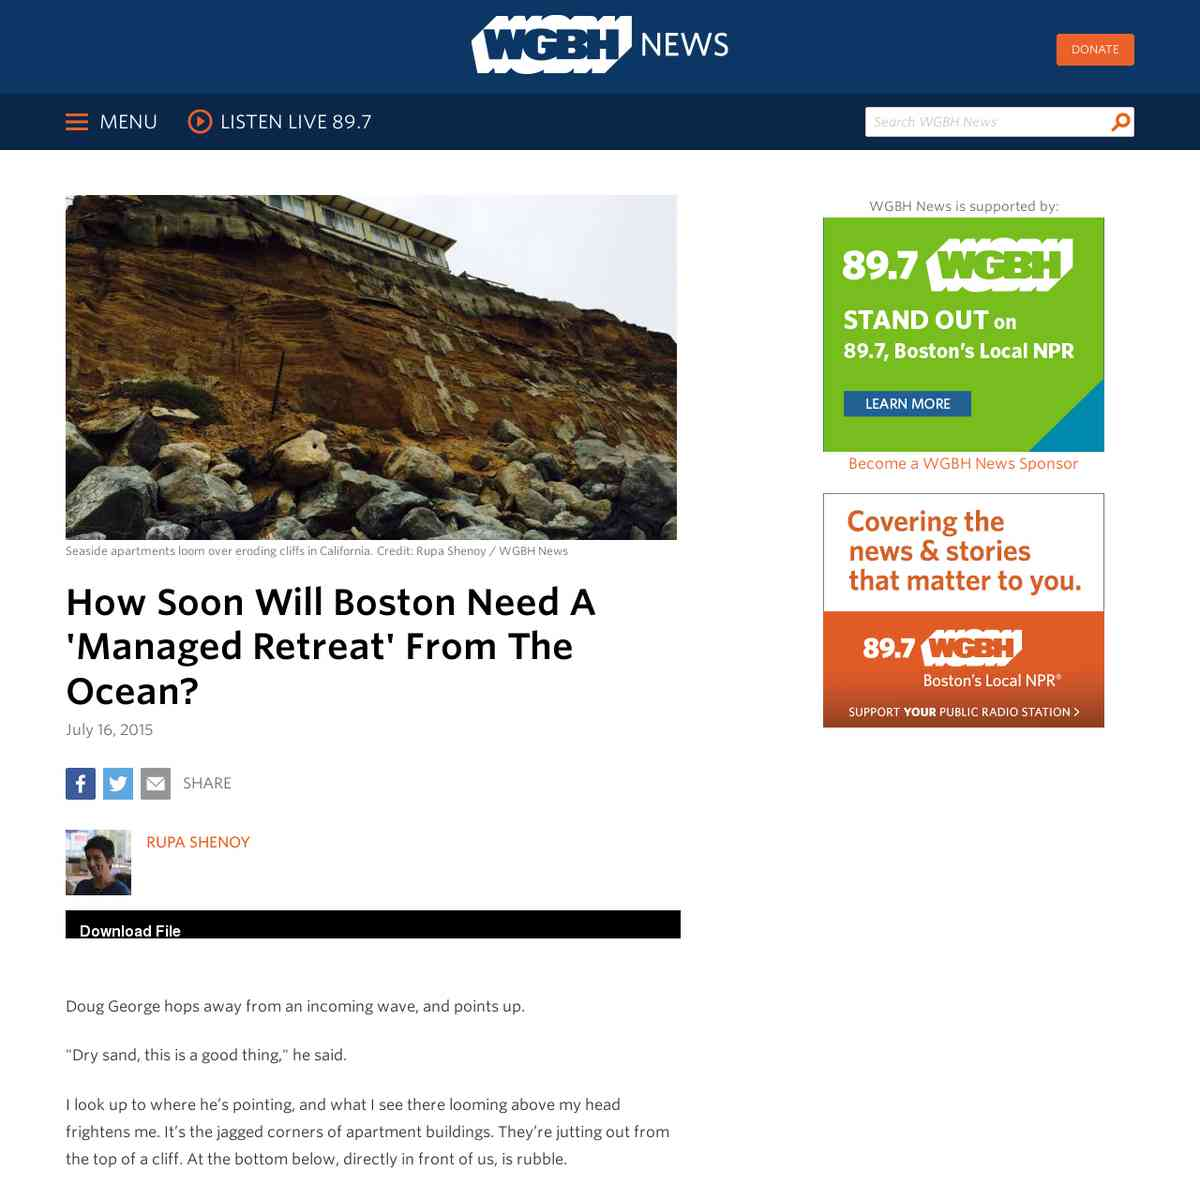 How Soon Will Boston Need A 'Managed Retreat' From The Ocean?